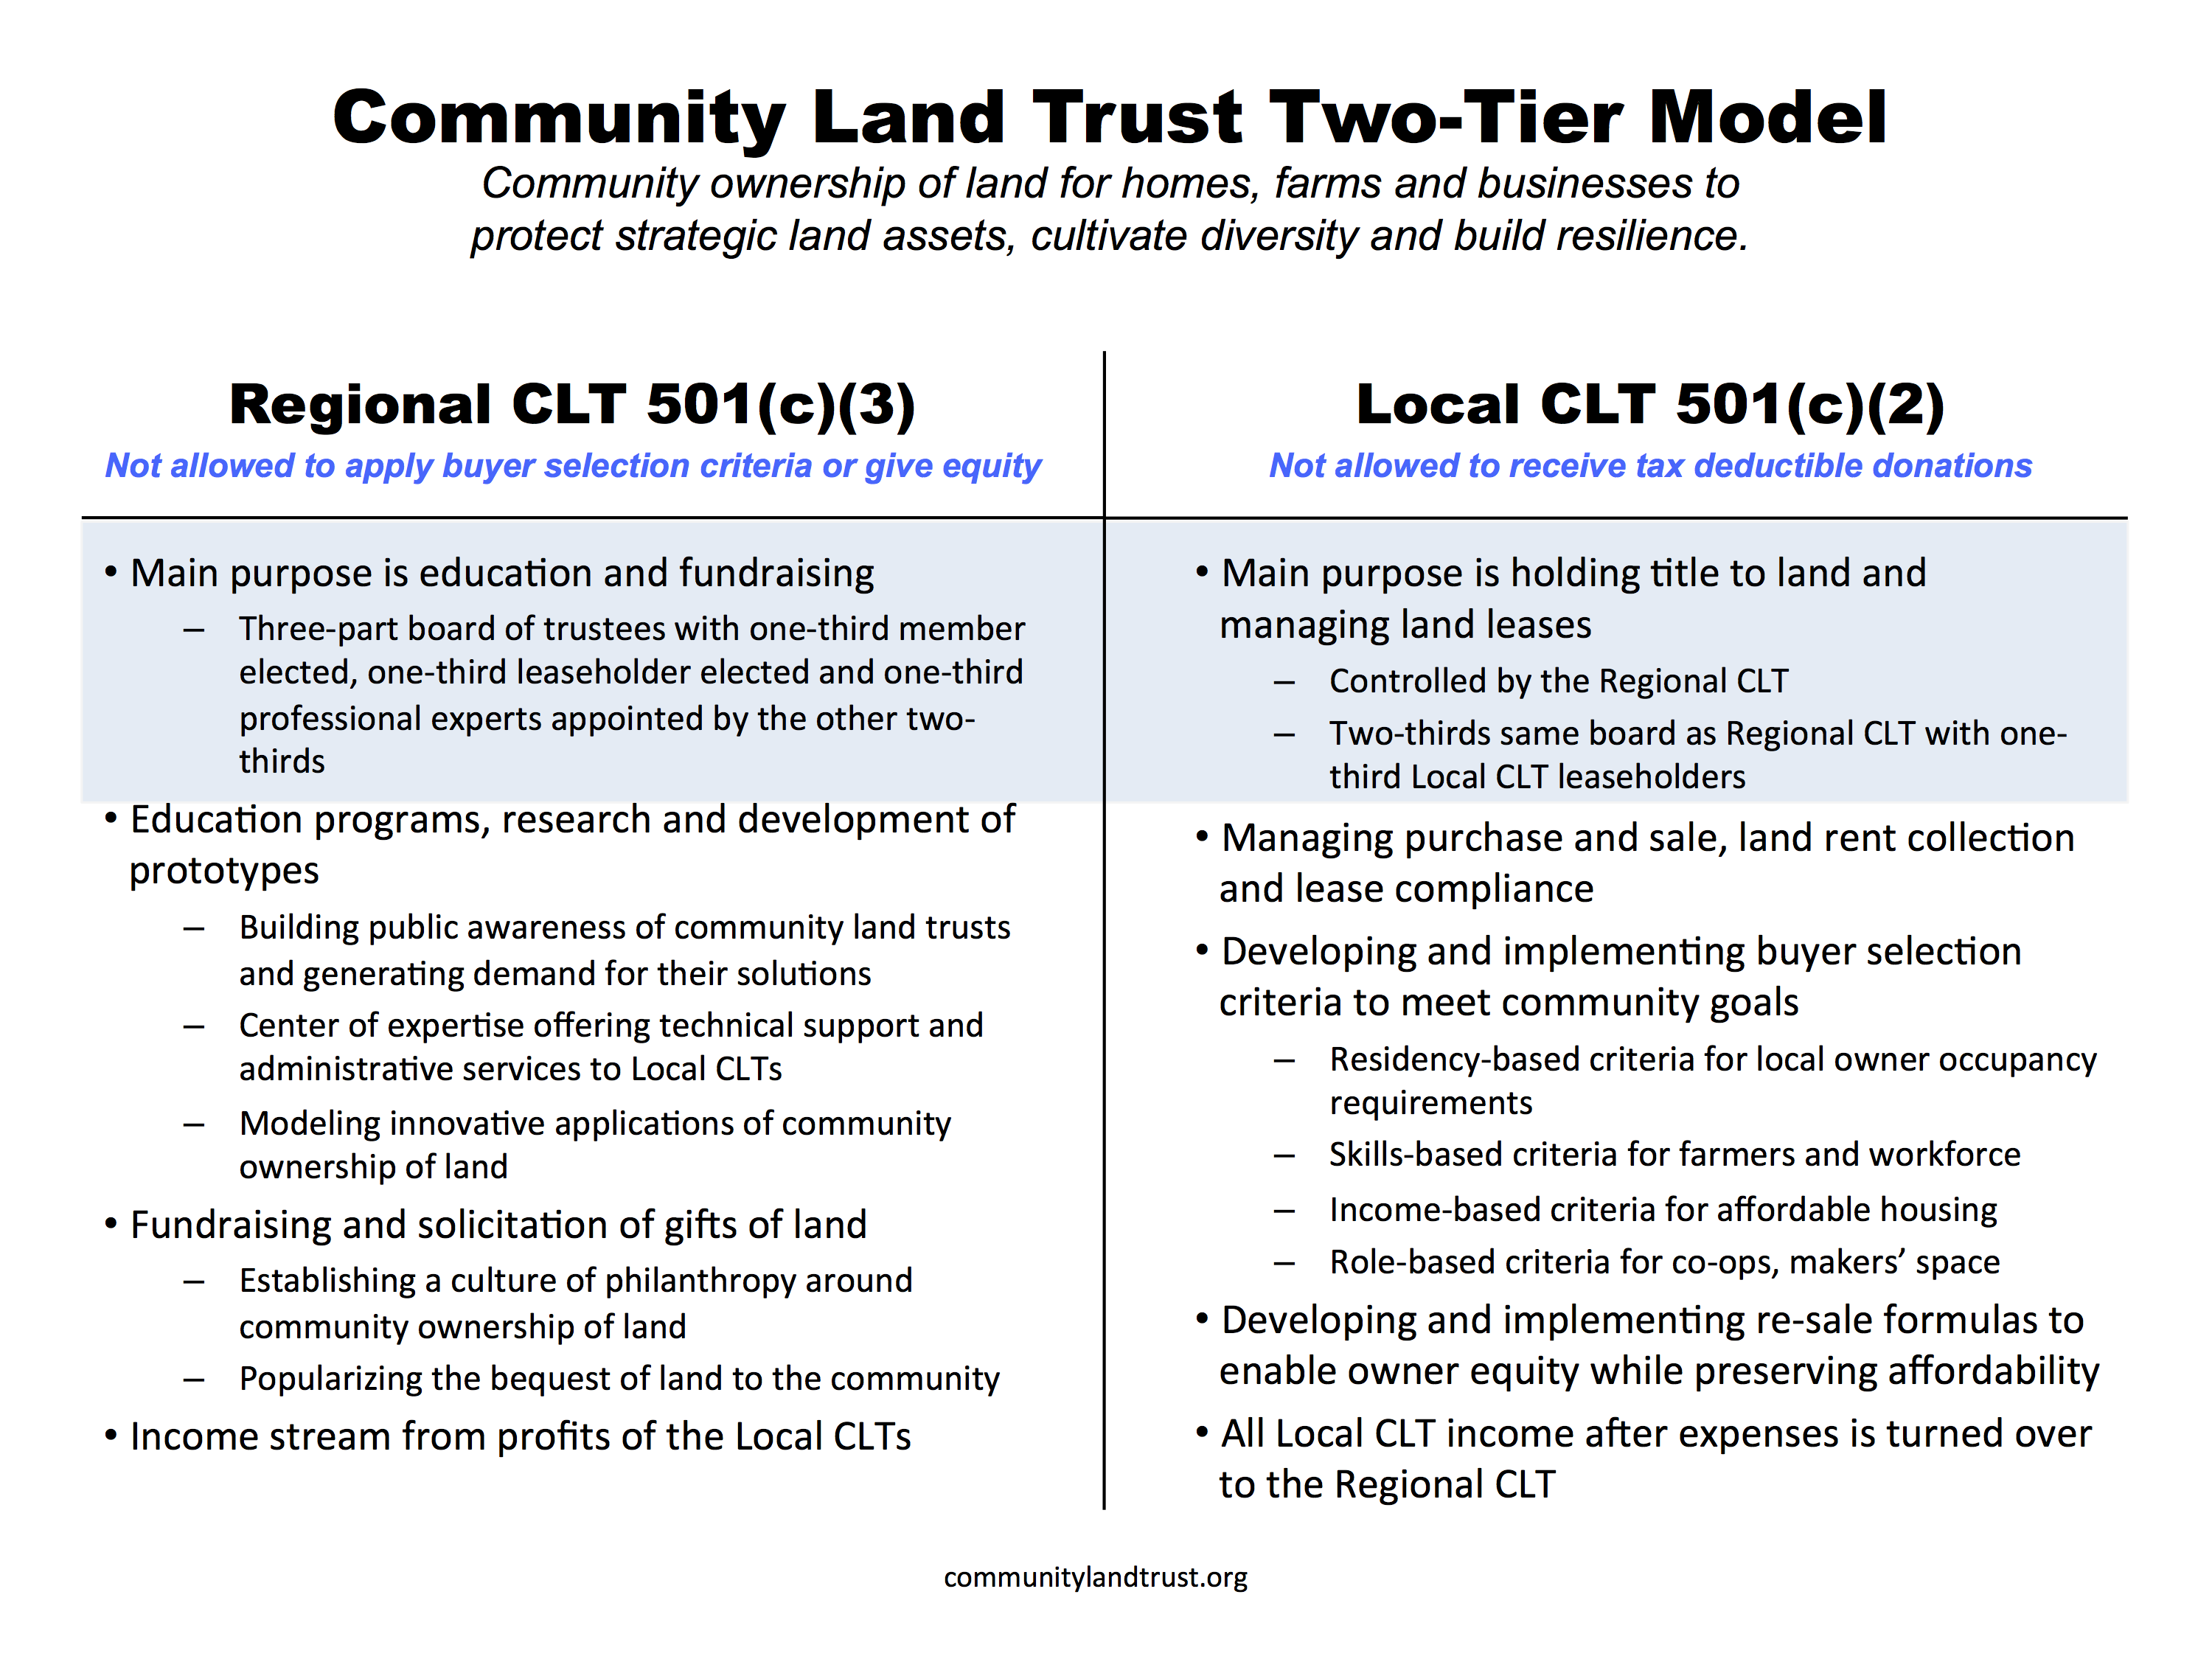 CLT-Two-Tier-Model-fullsize